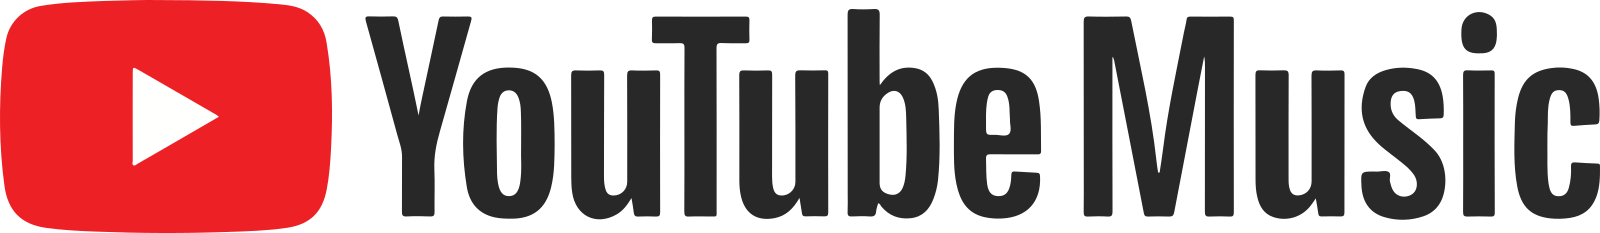 youtube music logo 8 - Youtube Music Logo